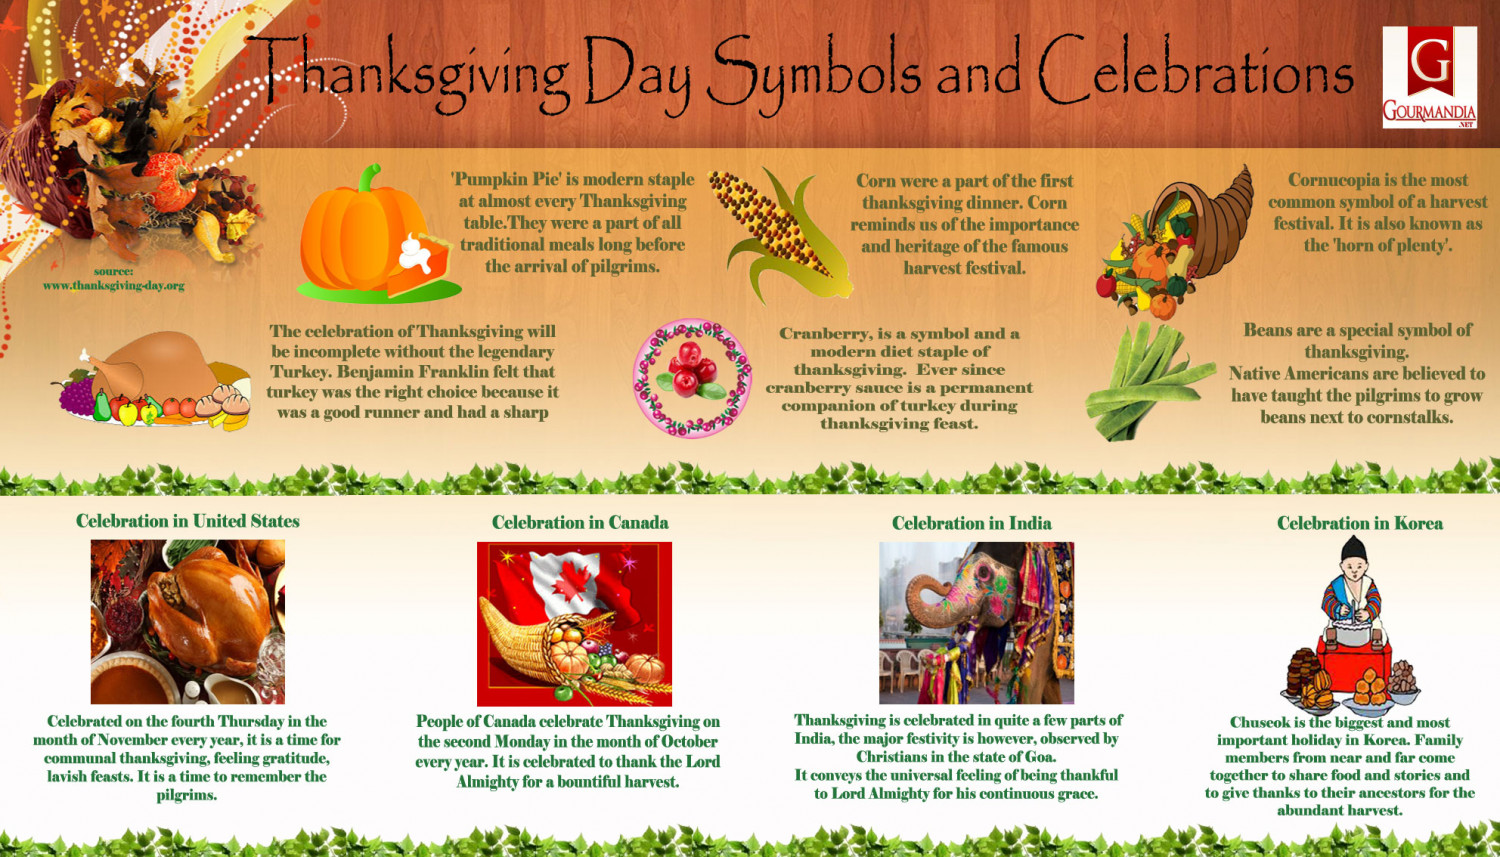 Thanksgiving Day Symbols and Celebrations Infographic